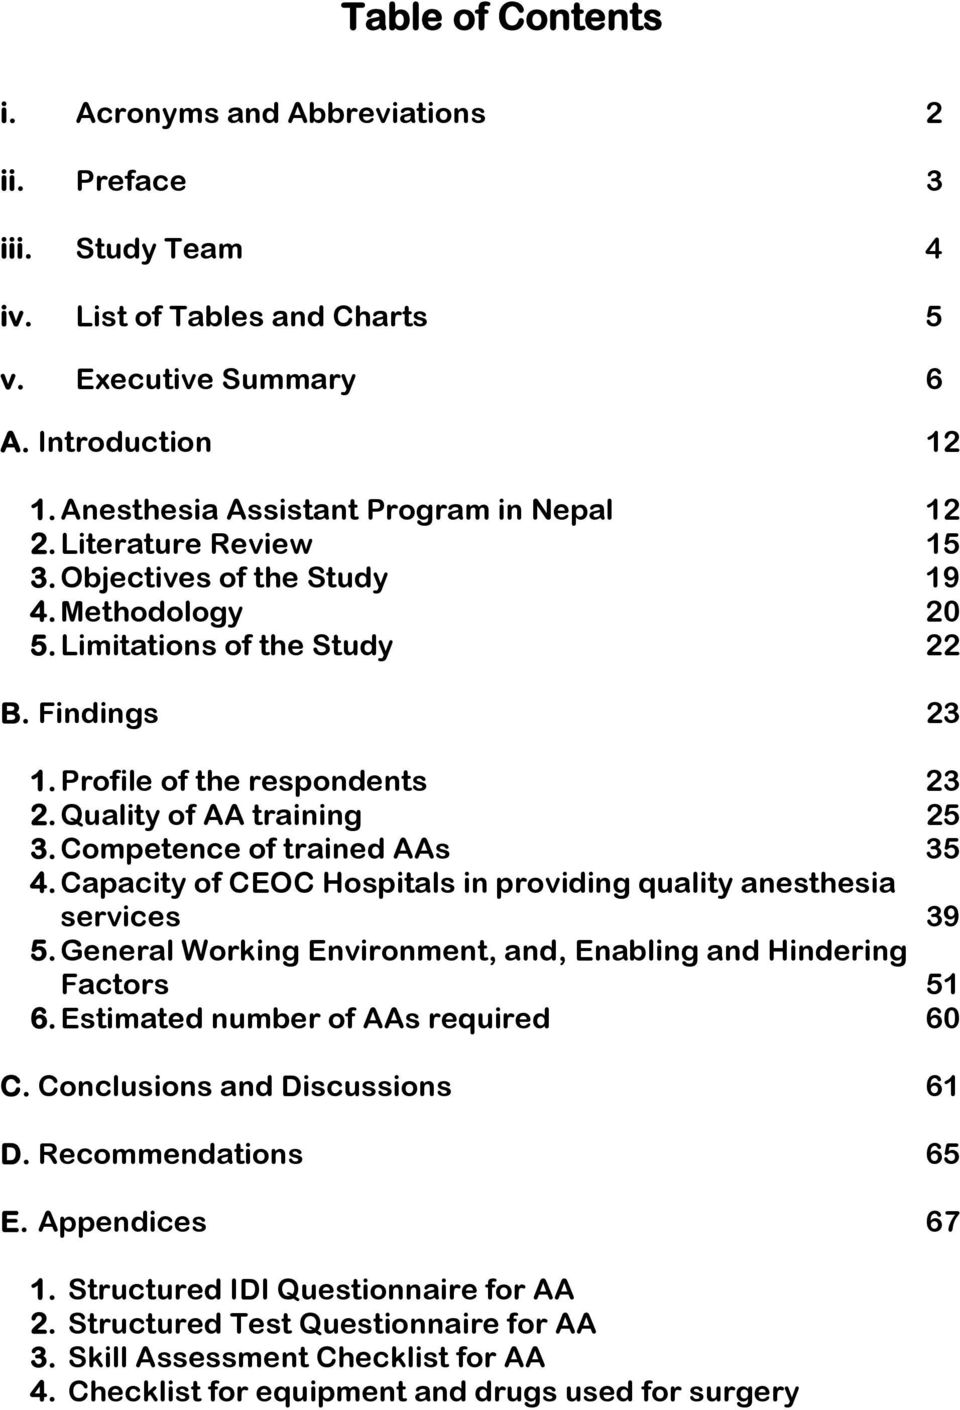 Evaluation Of Performance Of Anesthesia Assistants Of Nepal Pdf